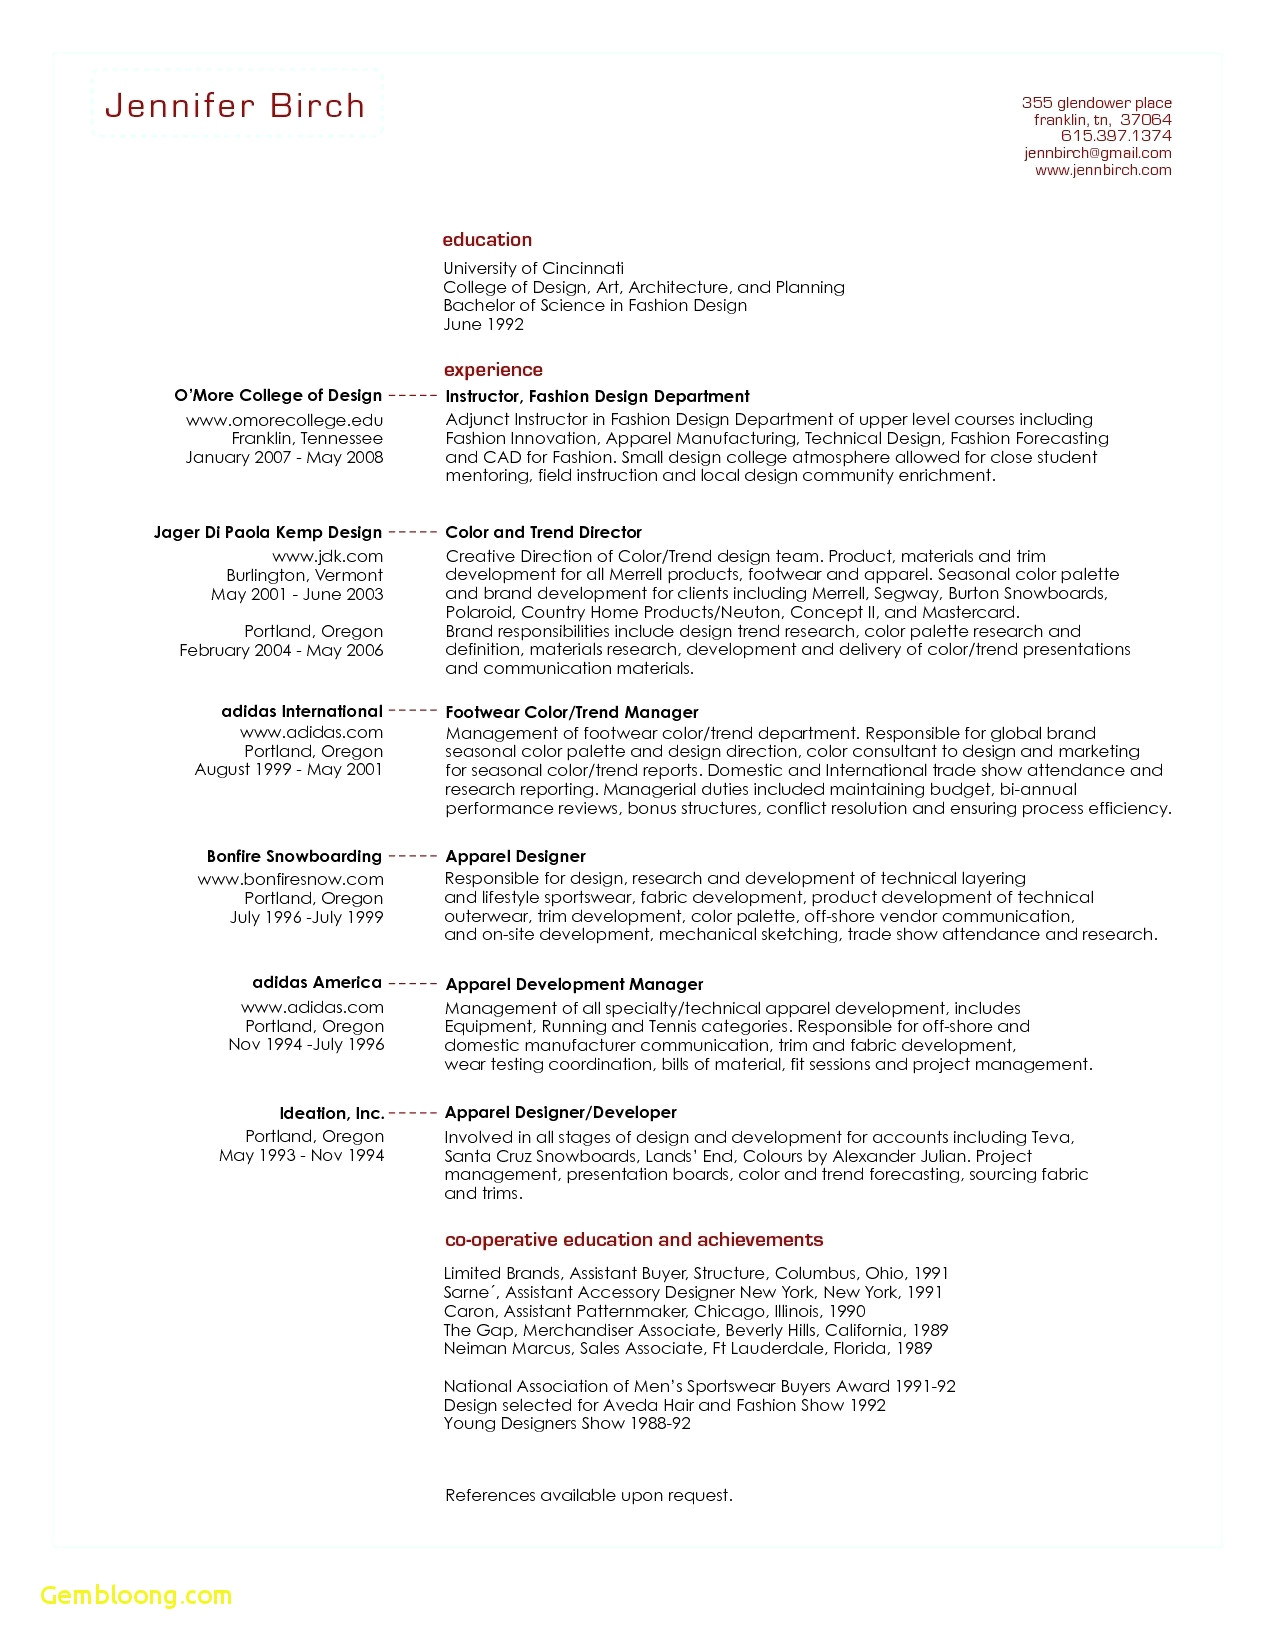 Entry Level It Resume with No Experience - Entry Level Government Jobs with No Experience Needed